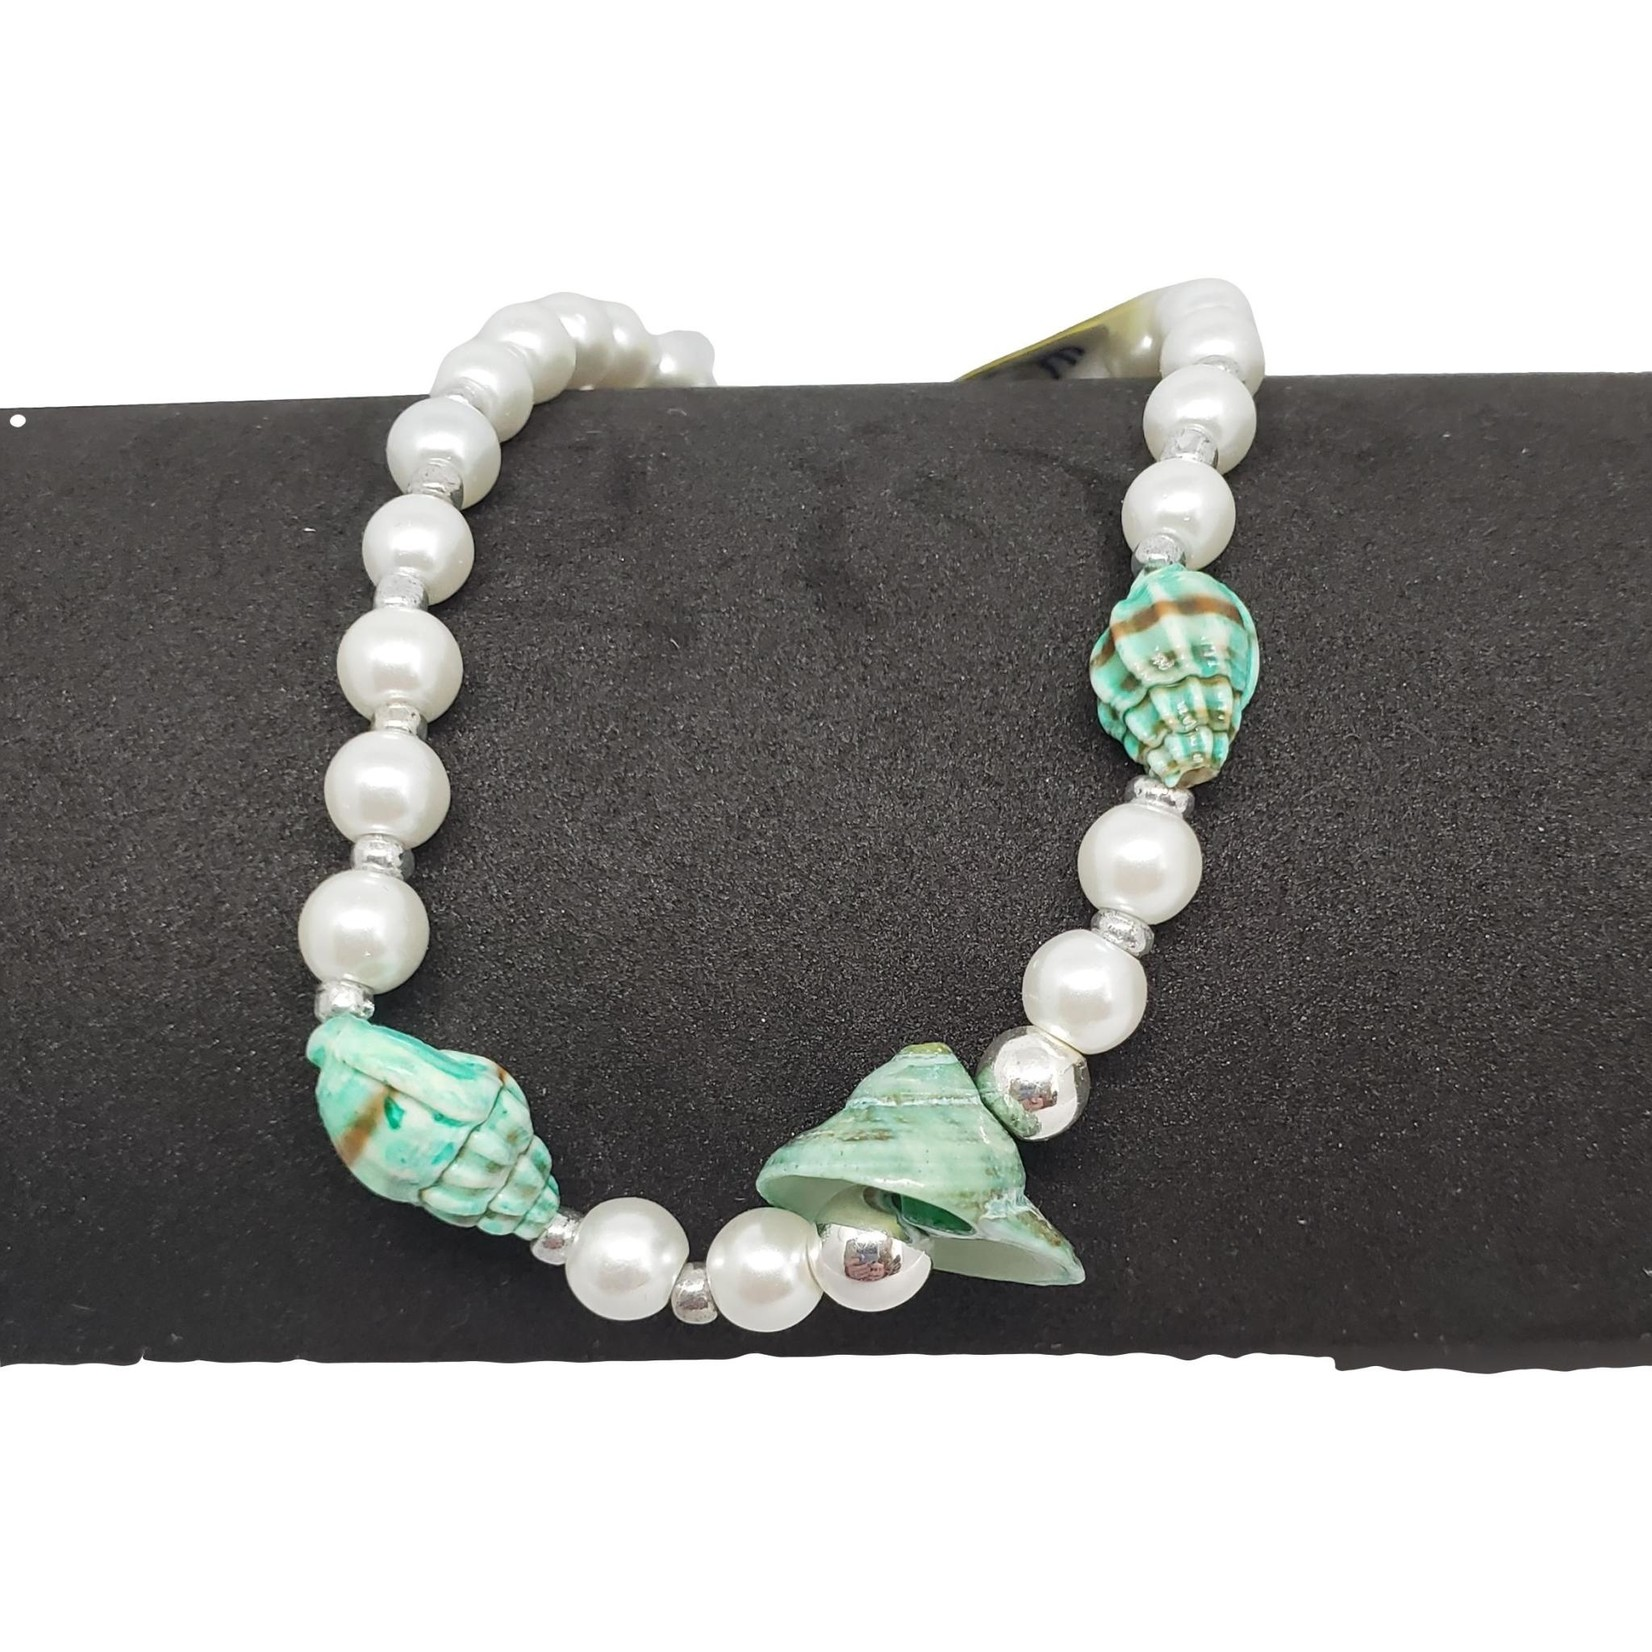 Jewellery by Deborah Young-Groves Pearls and Turquoise Shells Ankle Bracelet